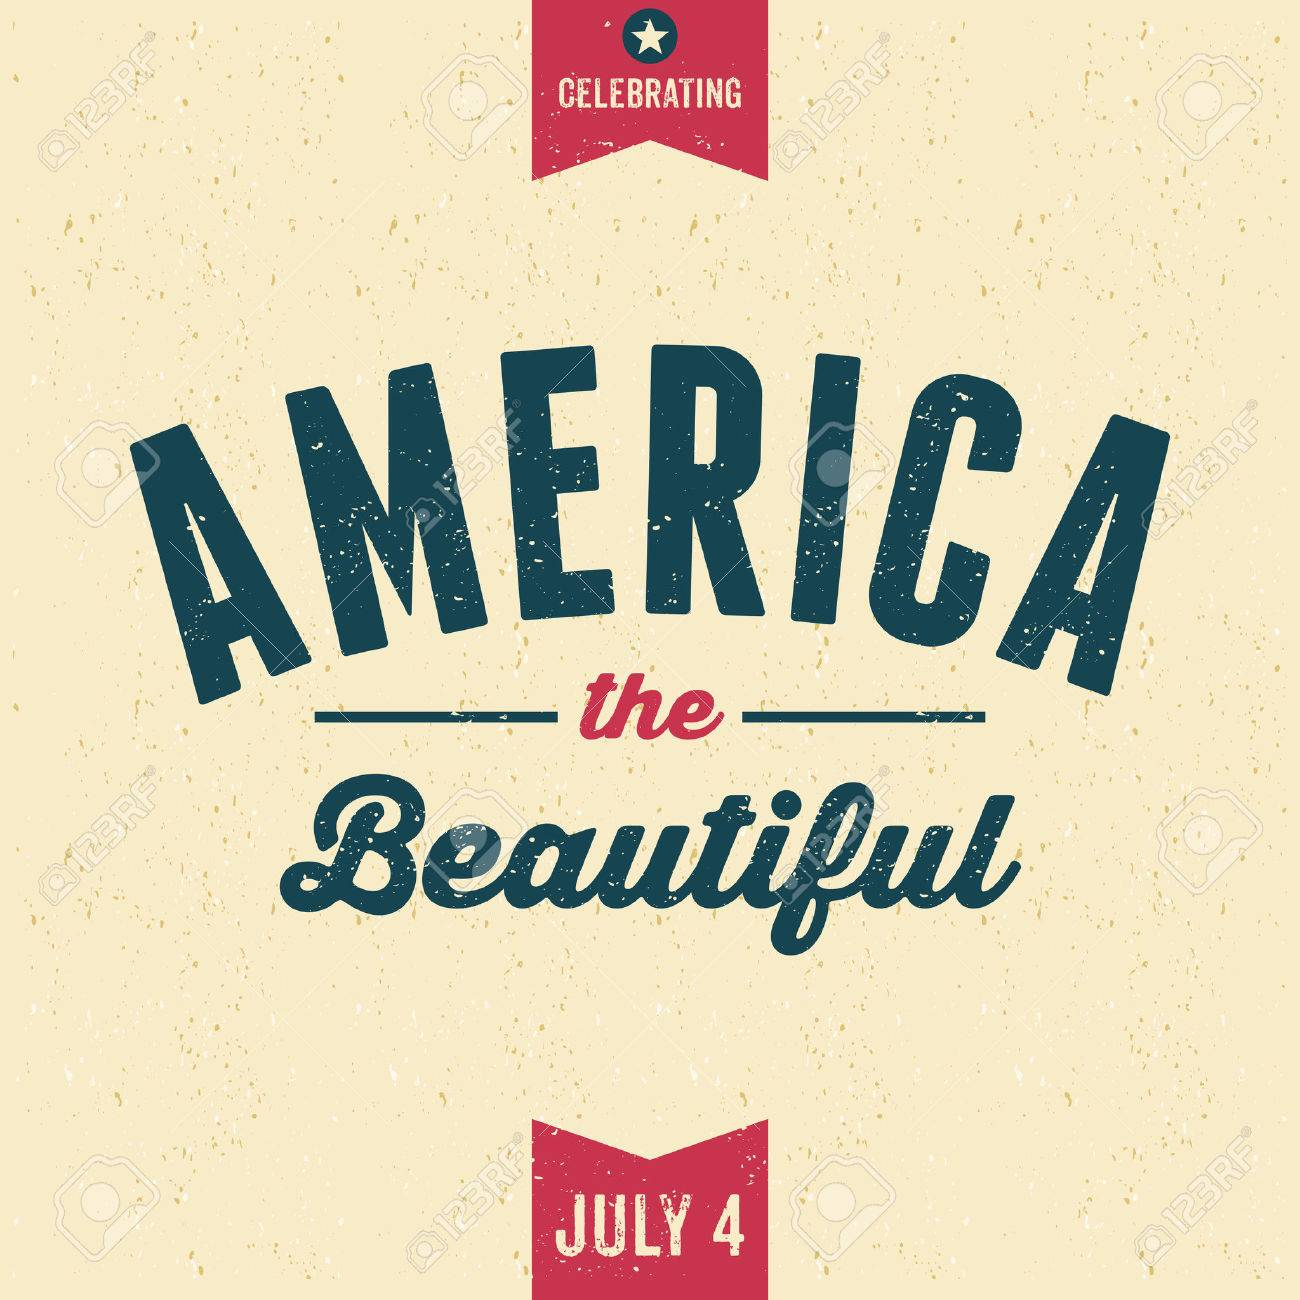 Vintage Style Old Paper Greeting Card For Independence Day America